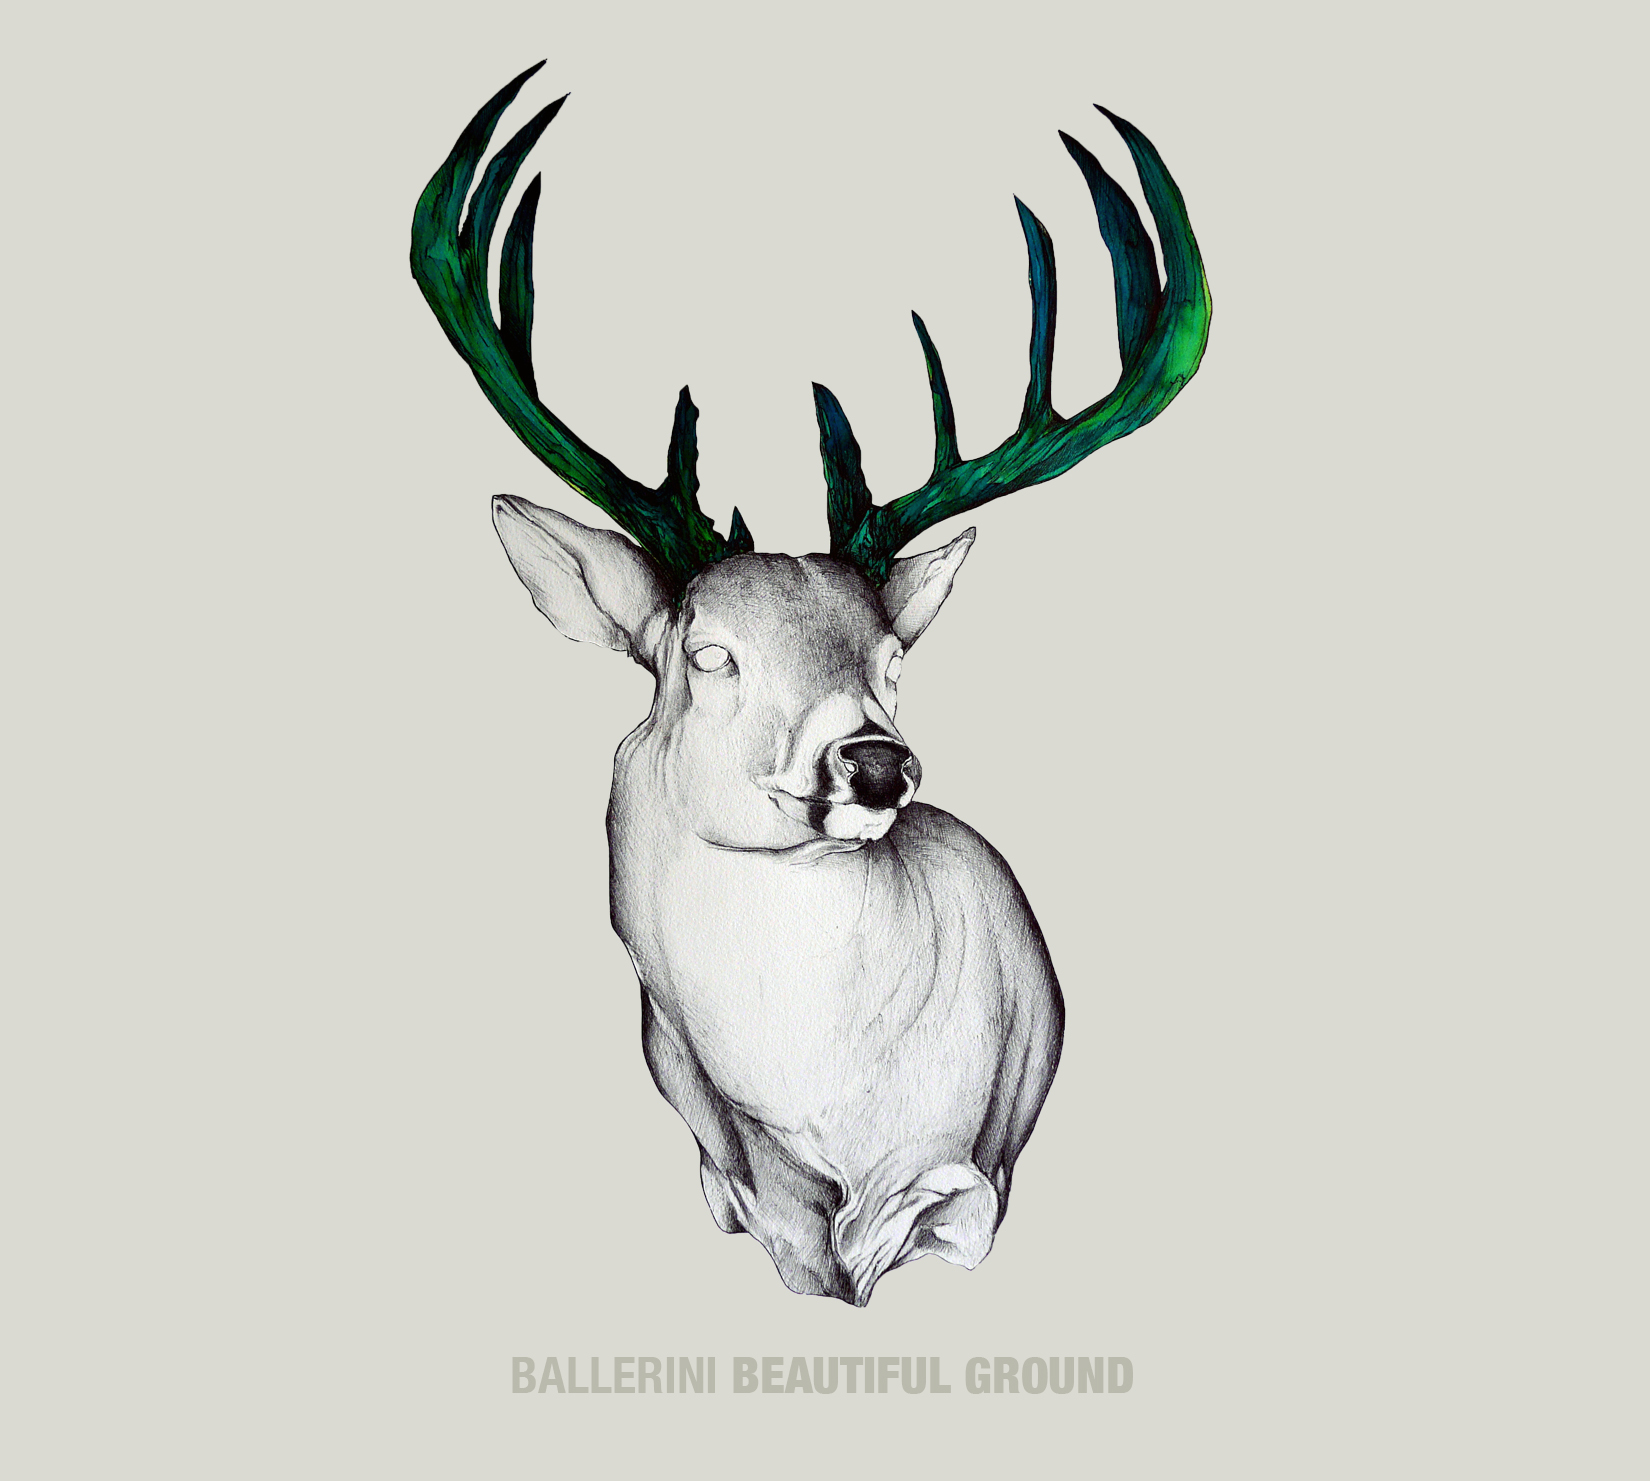 Ballerini-BeautifulGround